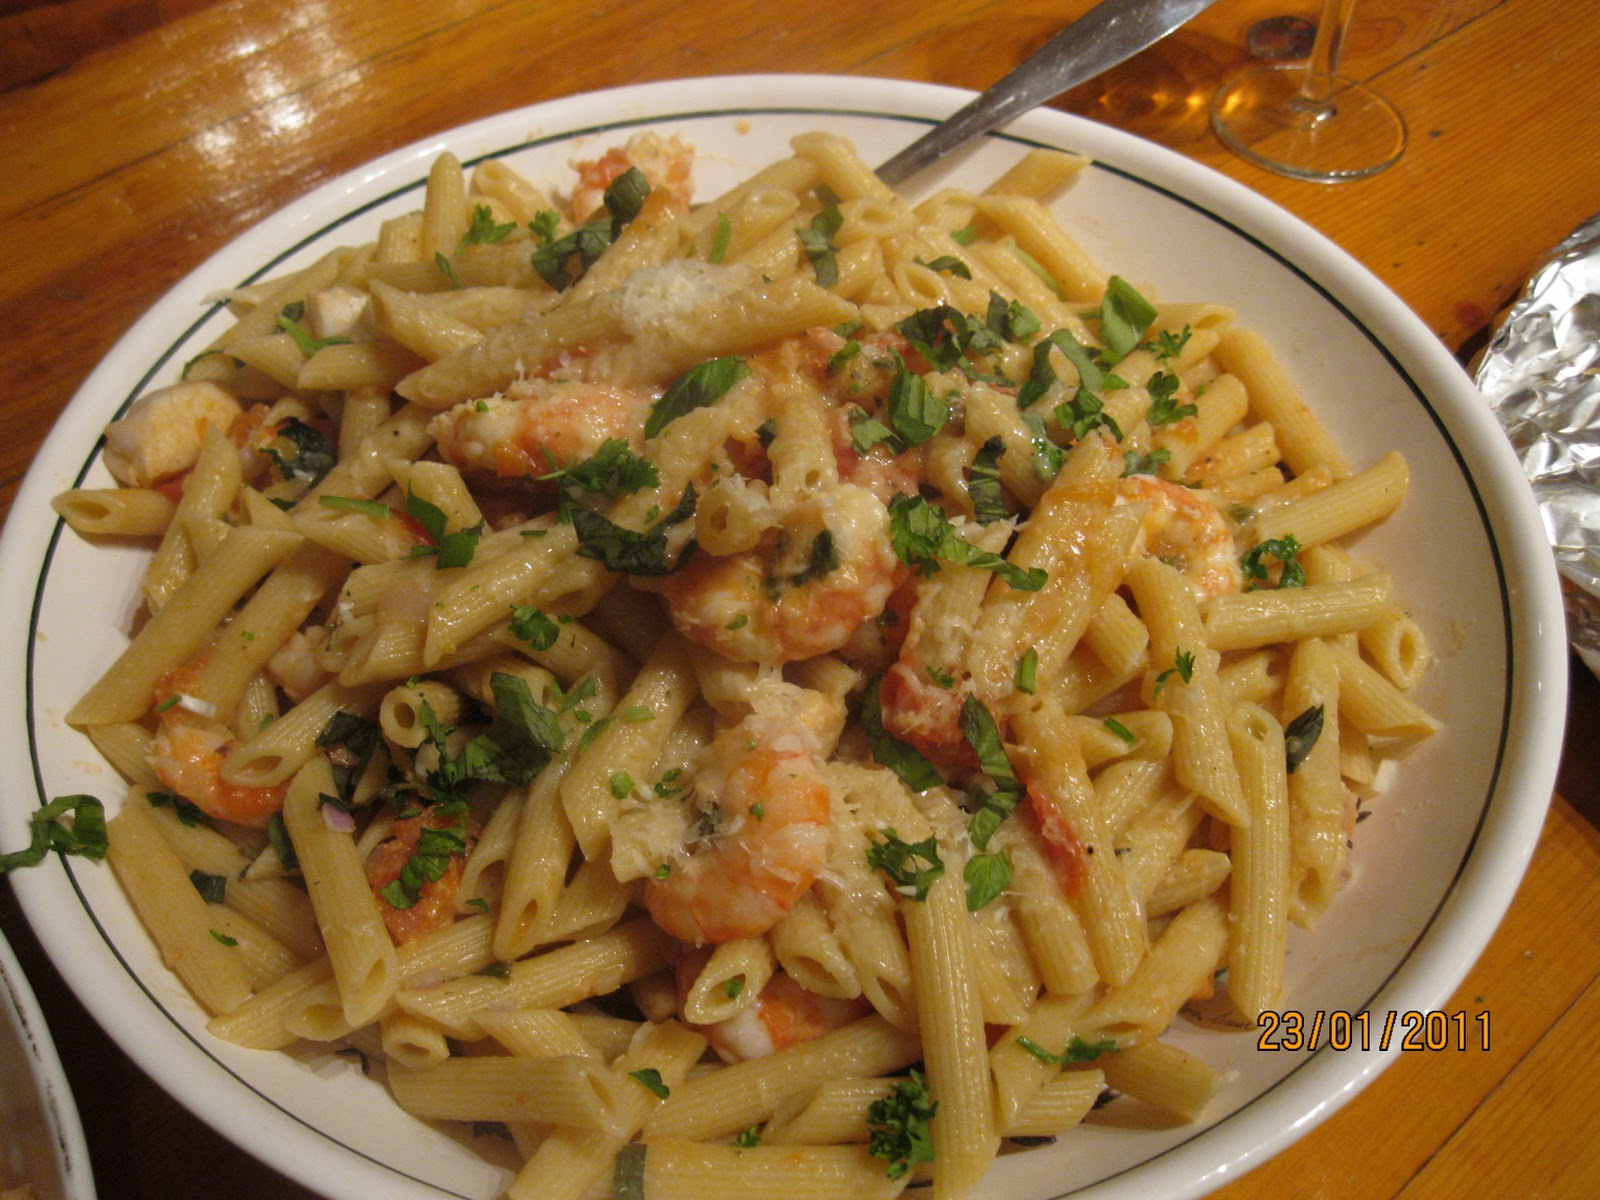 What's for dinner: Seafood pasta